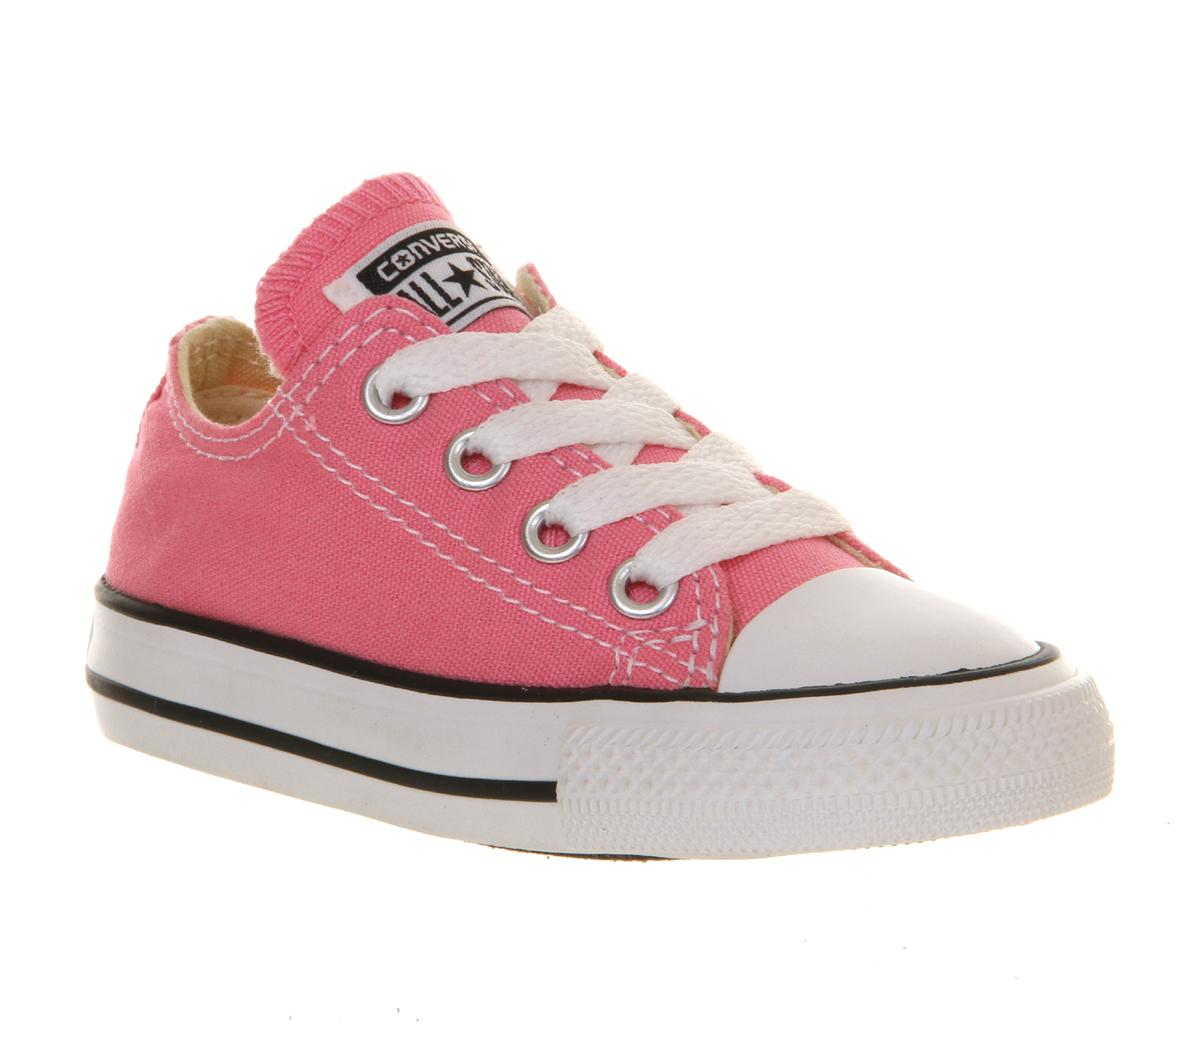 Converse All Star Low Infant Shoes Pink